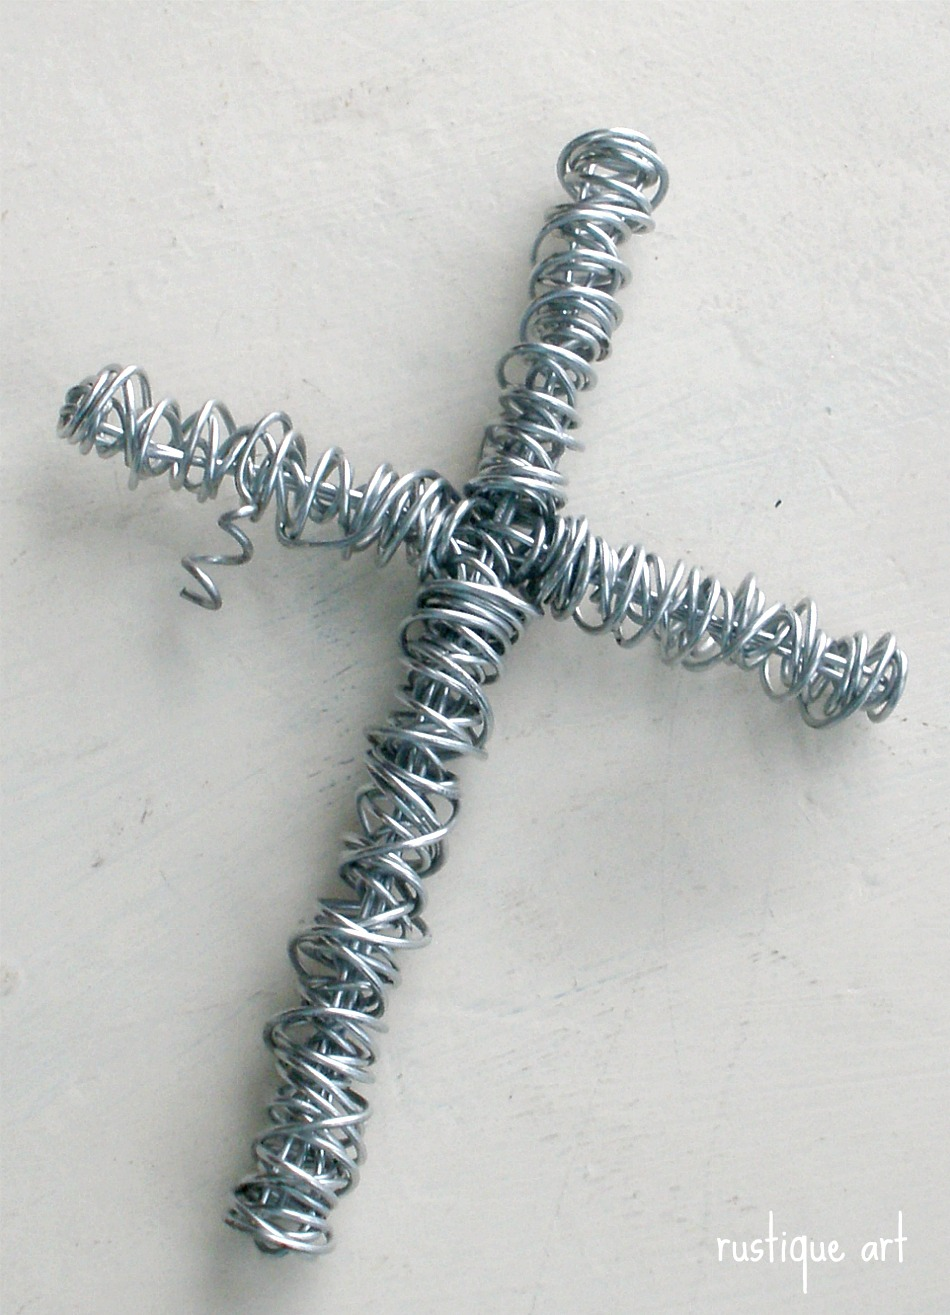 Rustique Art: Designing a Beaded Wire Cross